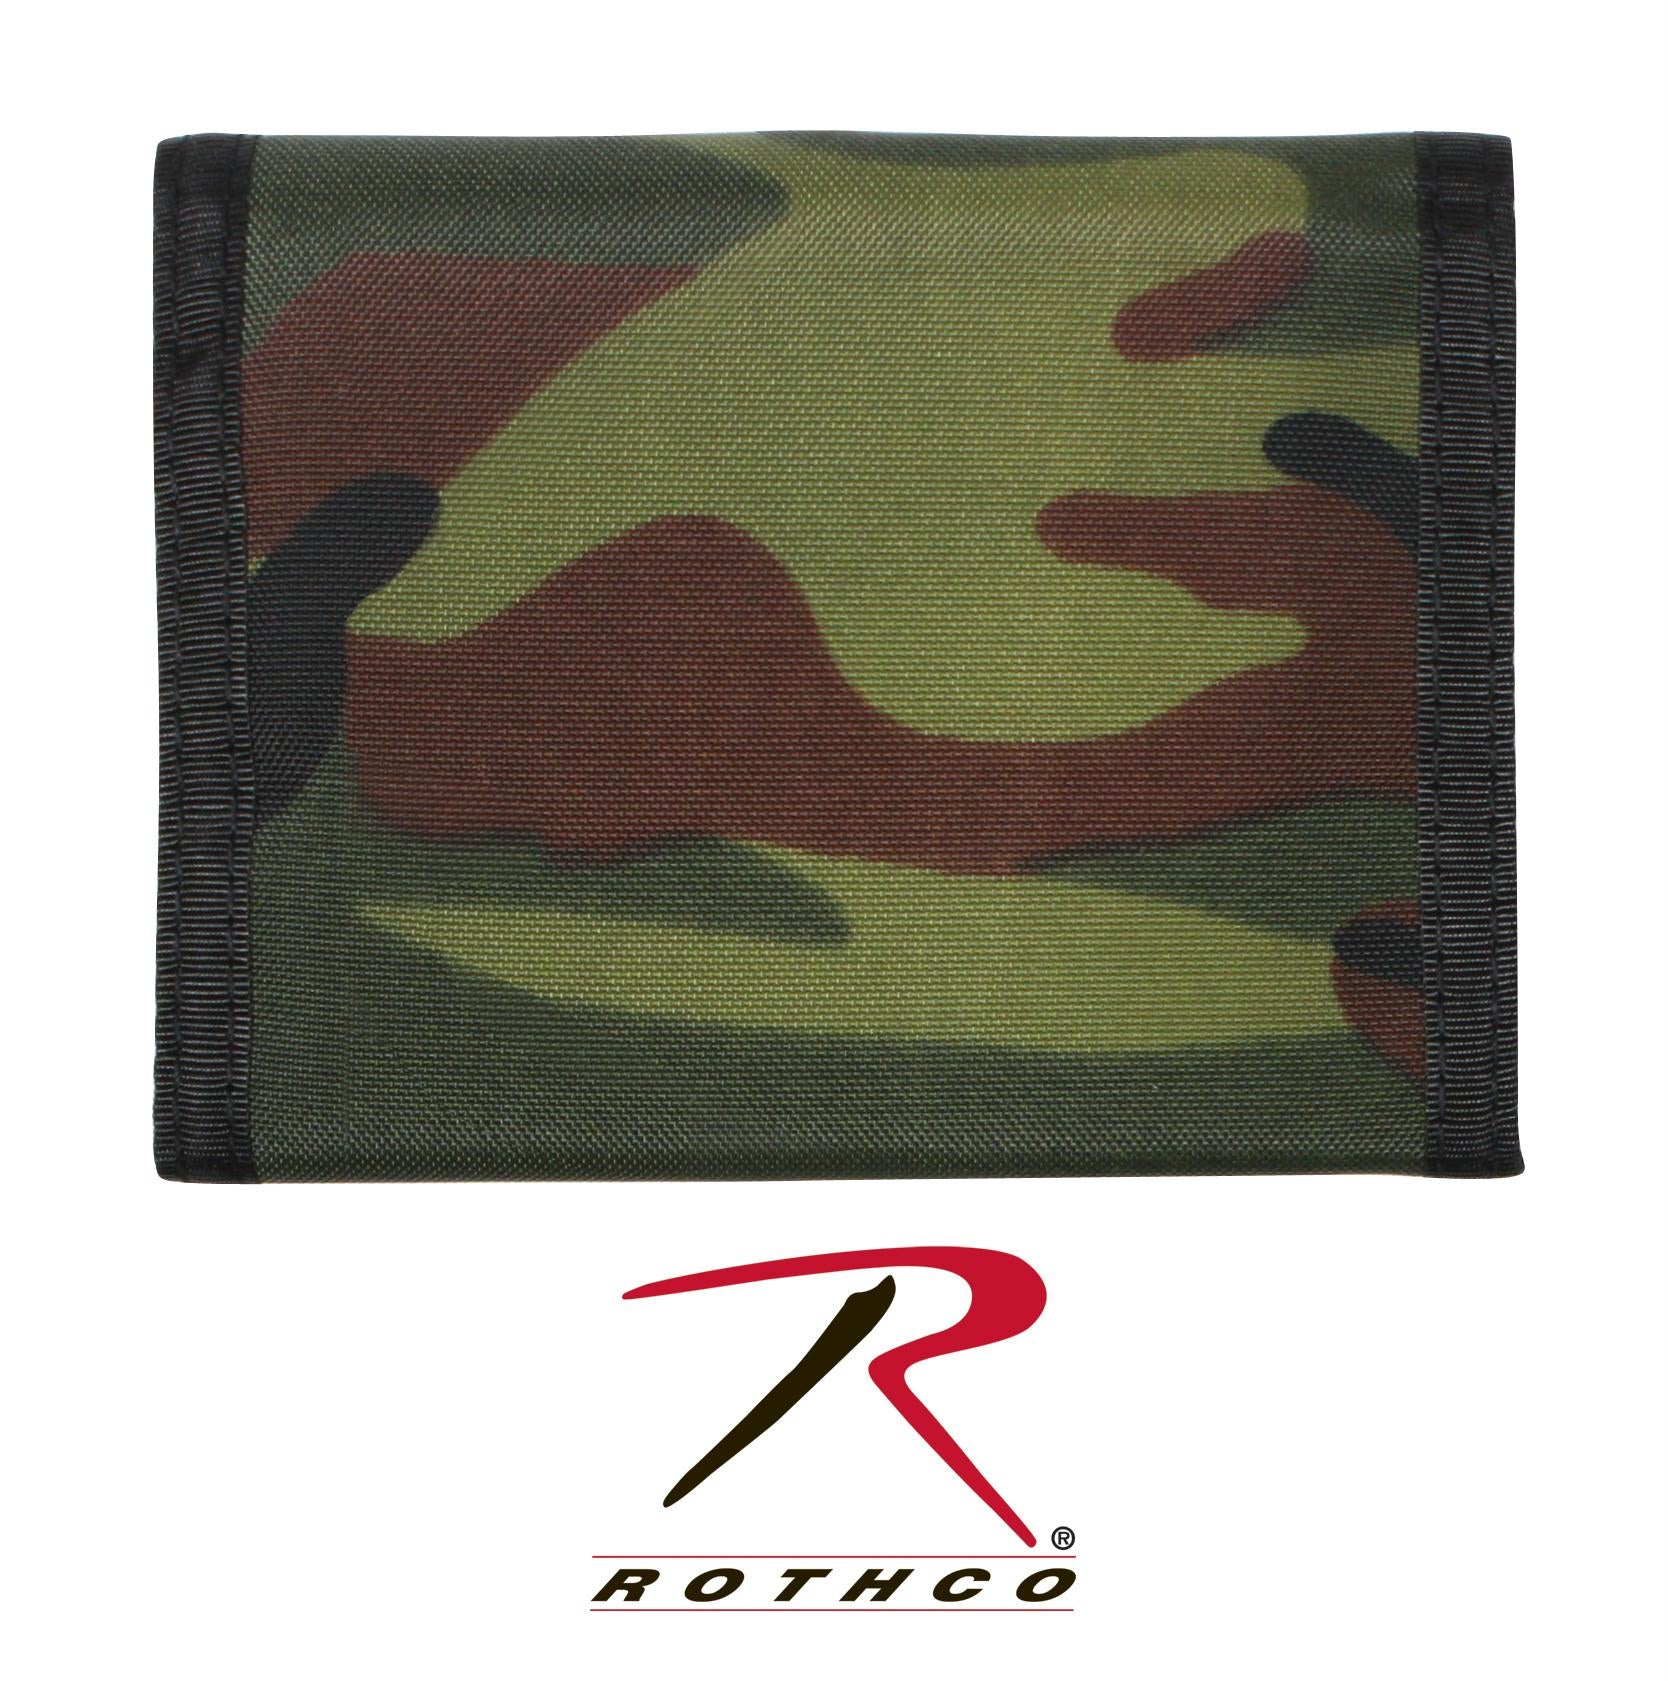 Rothco Commando Wallet - Woodland Camo